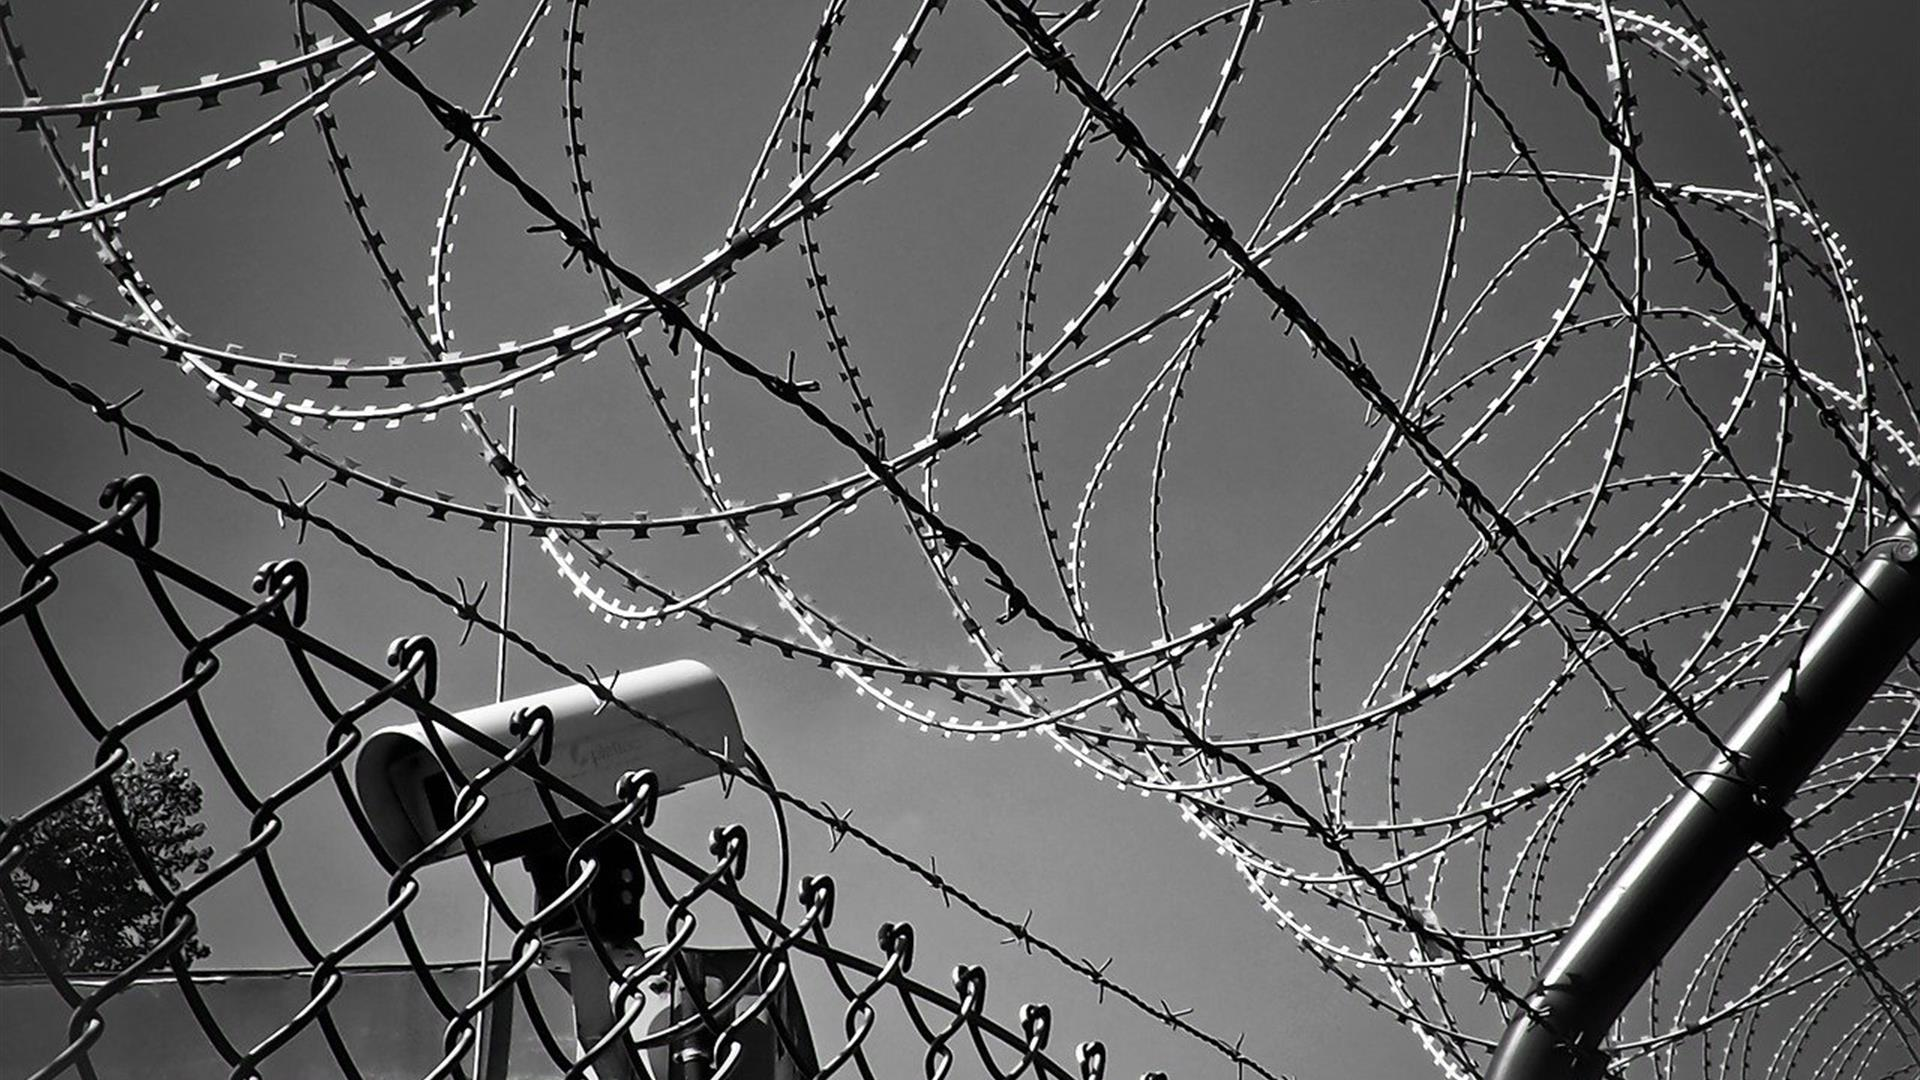 Barbed Wire 1670222 1280 (1)